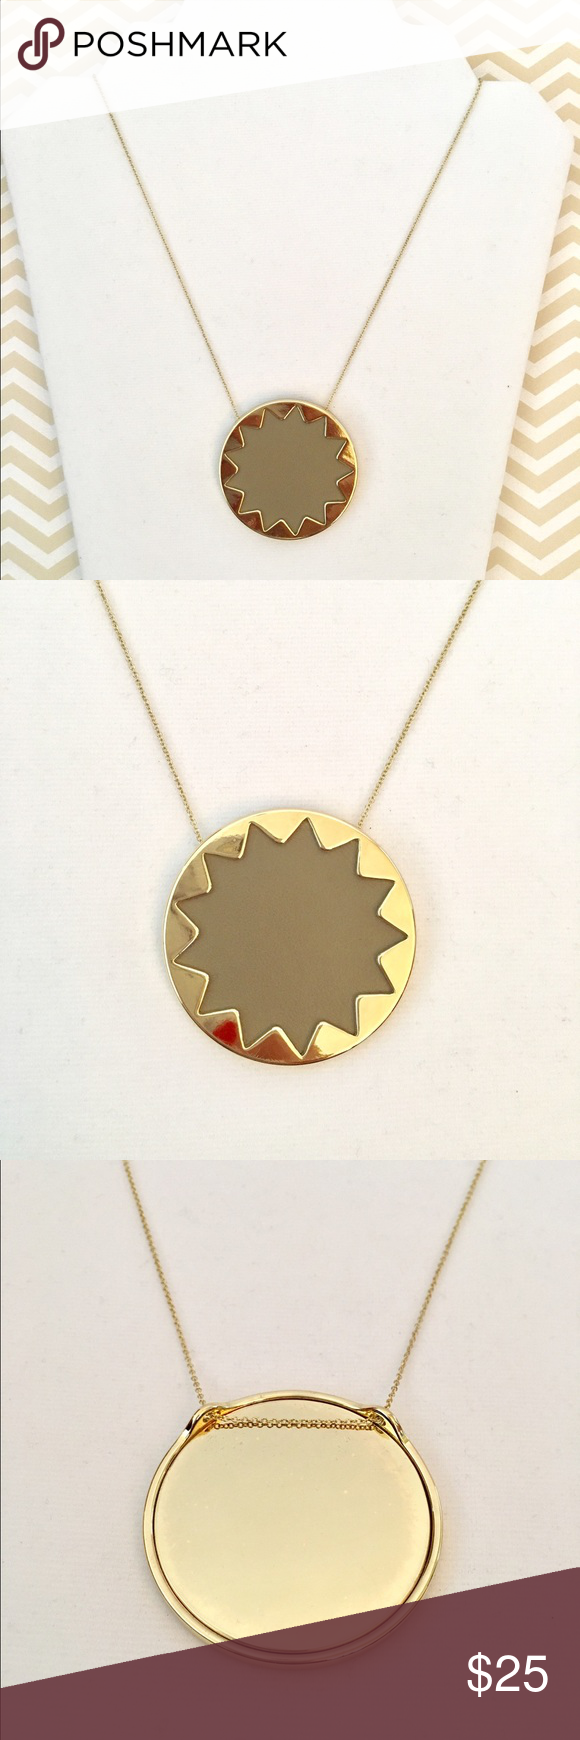 House of harlow large sunburst necklace delicate and chains